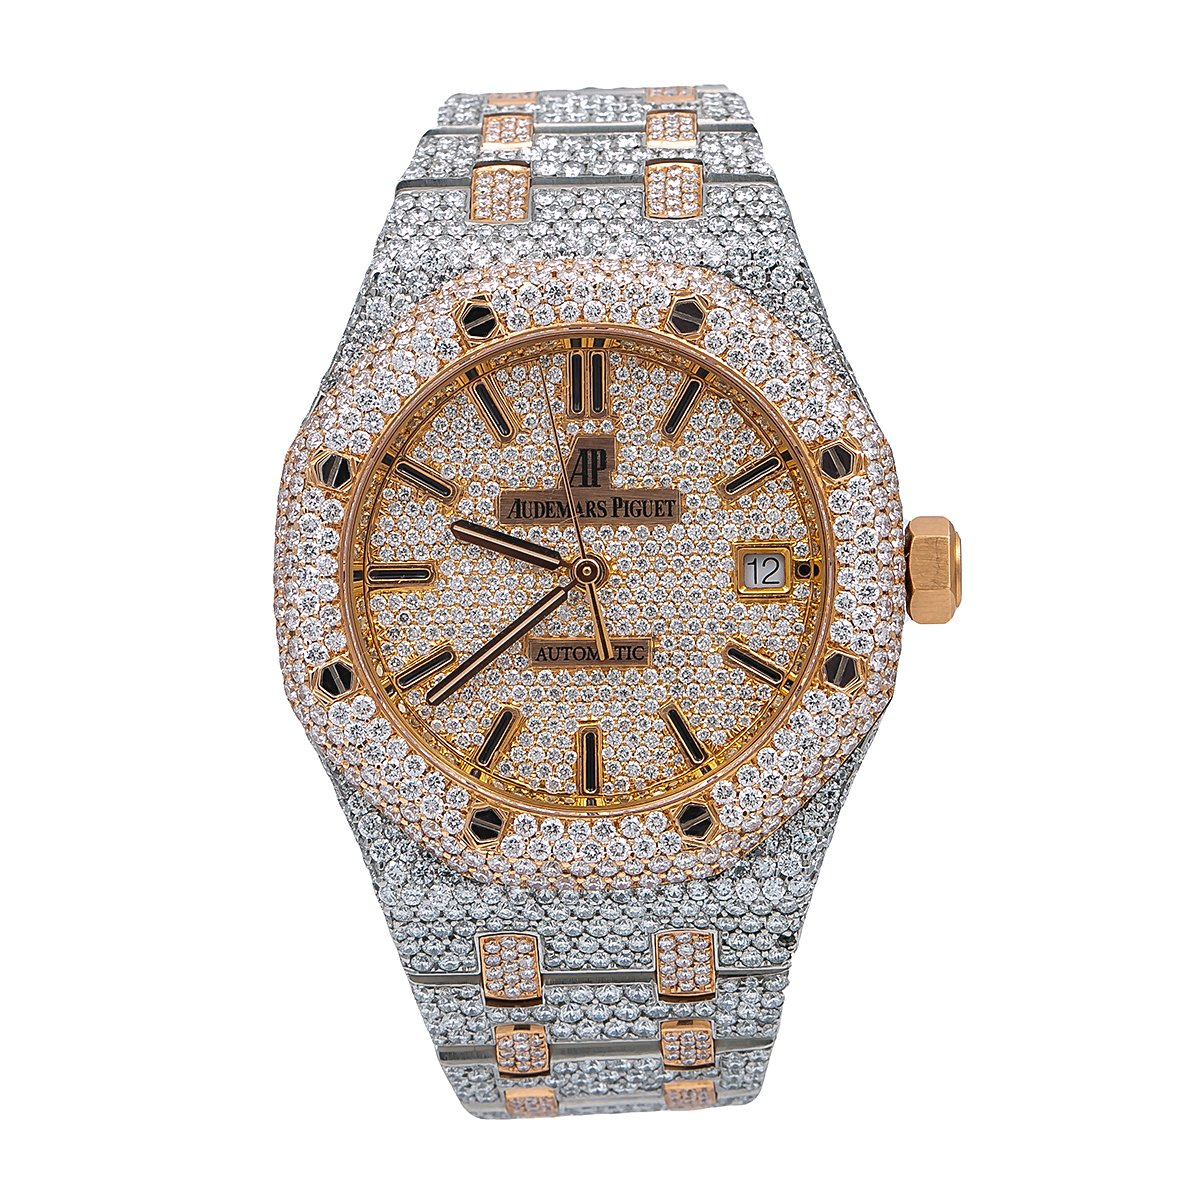 Audemars Piguet Royal Oak Self Winding 15450SR.OO.1256SR.01 37MM Champagne Diamond Dial With 22.75 CT Diamonds